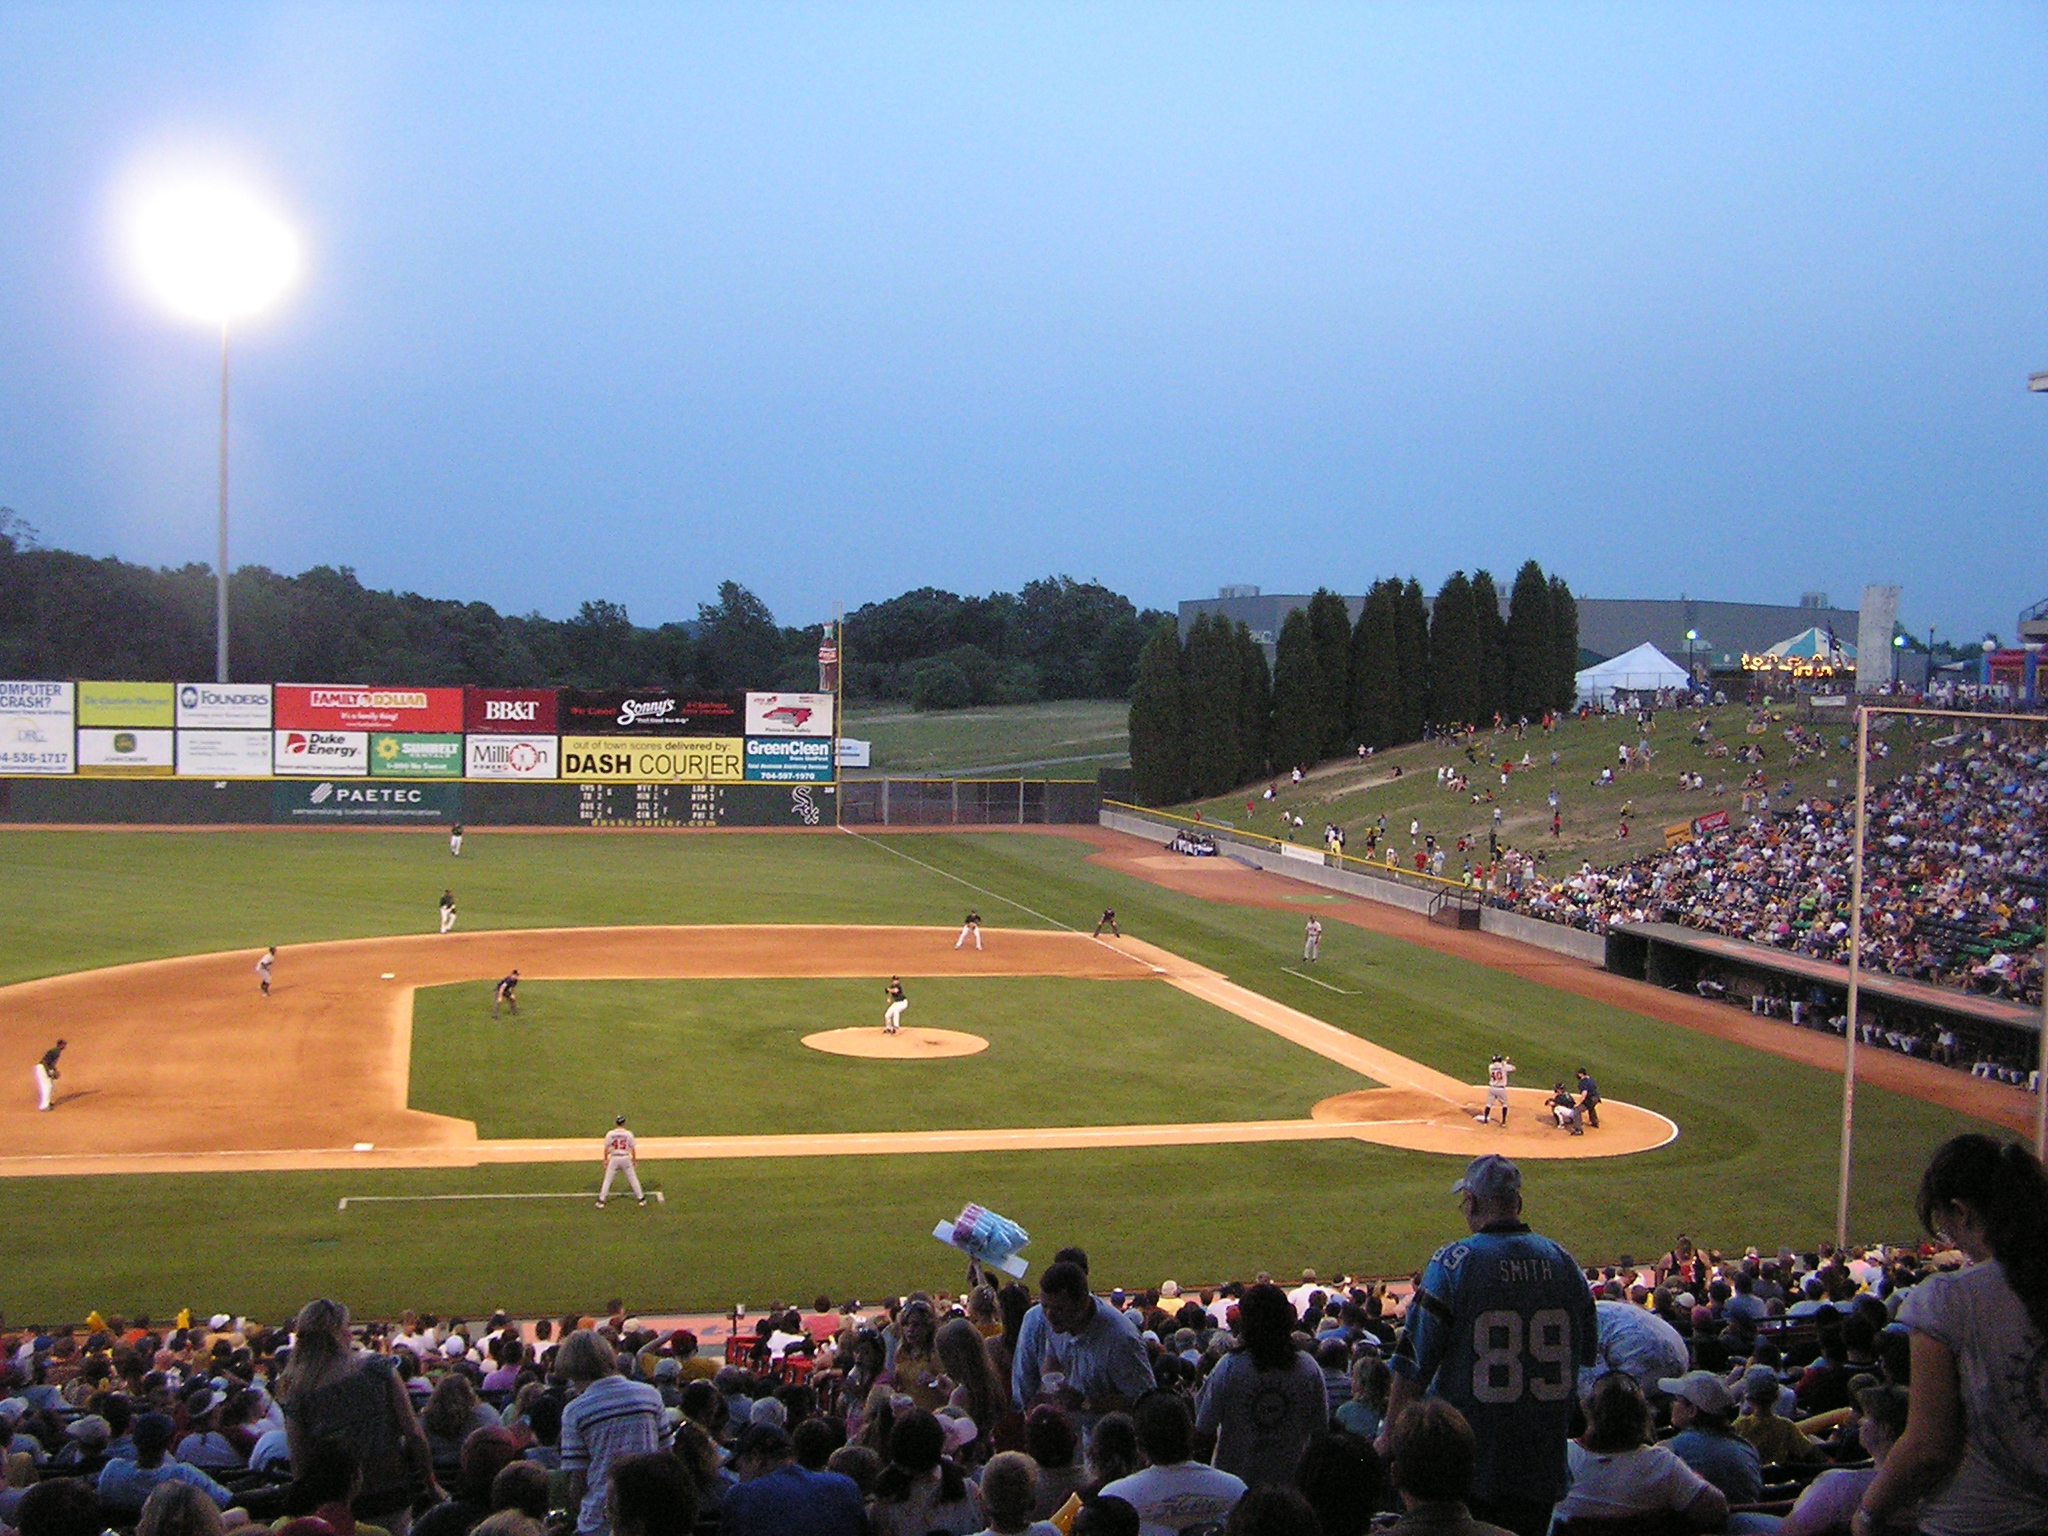 Knights Stadium from the 3rd base side